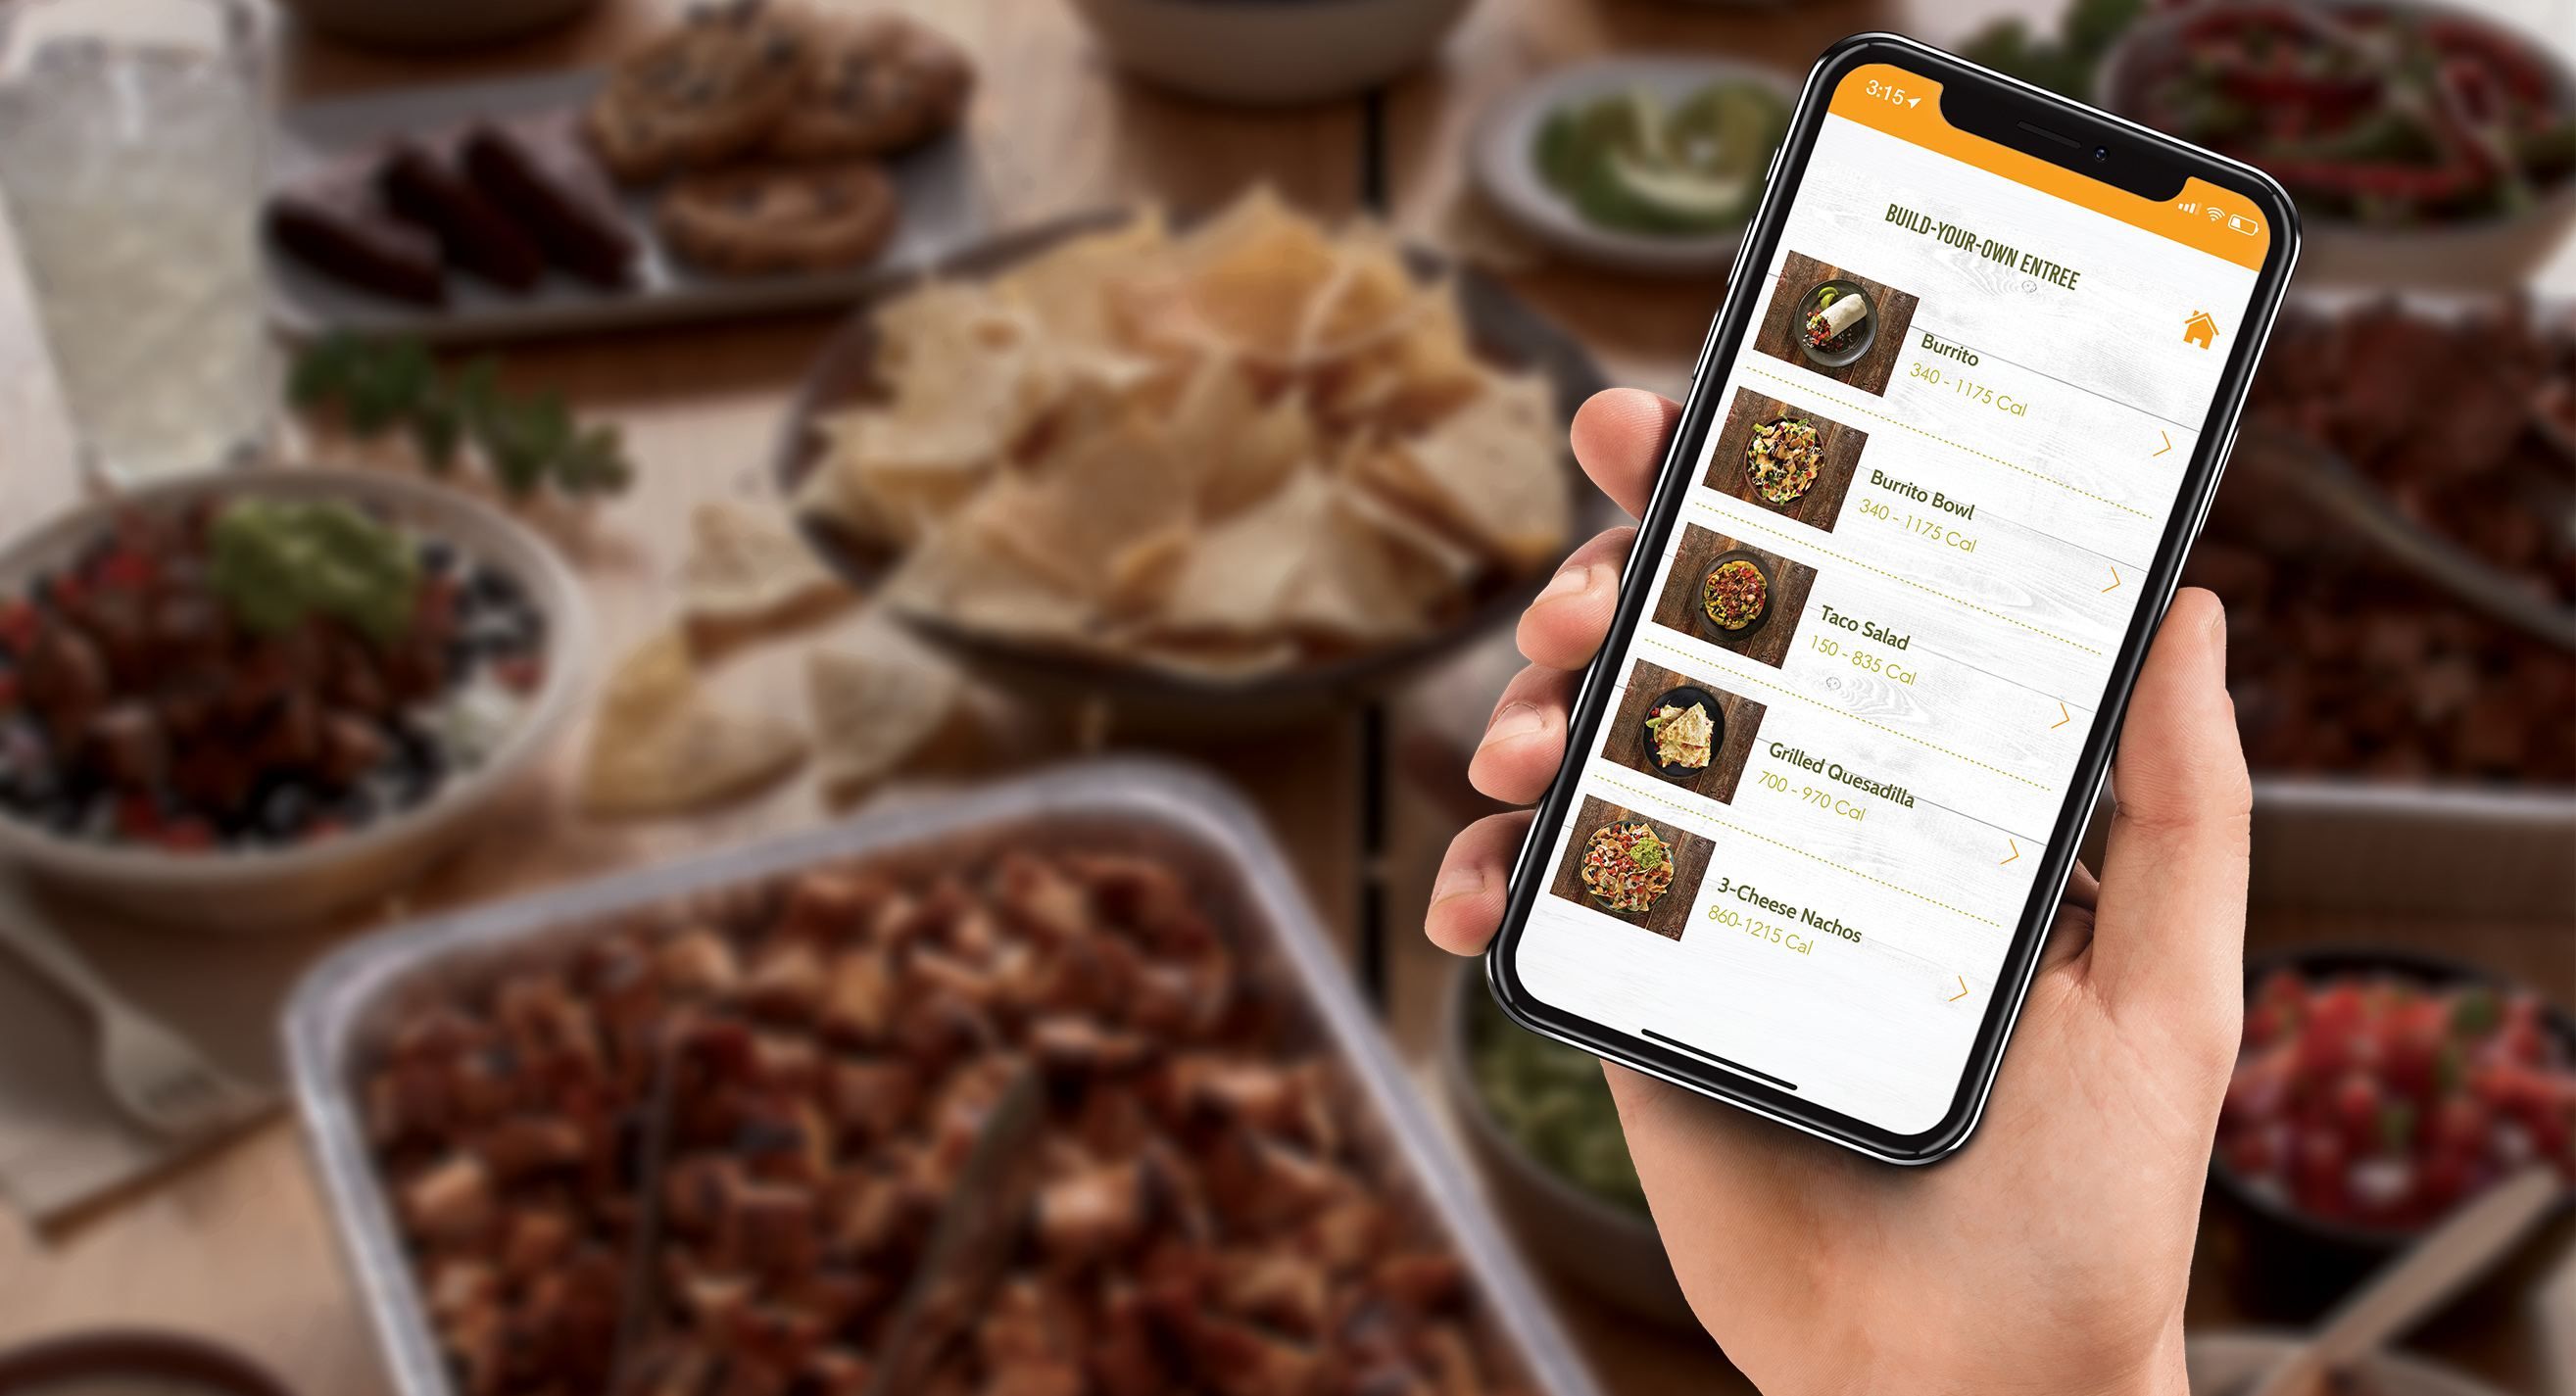 Qdoba rewards lets you earn points on in-store and catering orders! It's free to join, so sign up today to start earning your way to flavorful rewards.